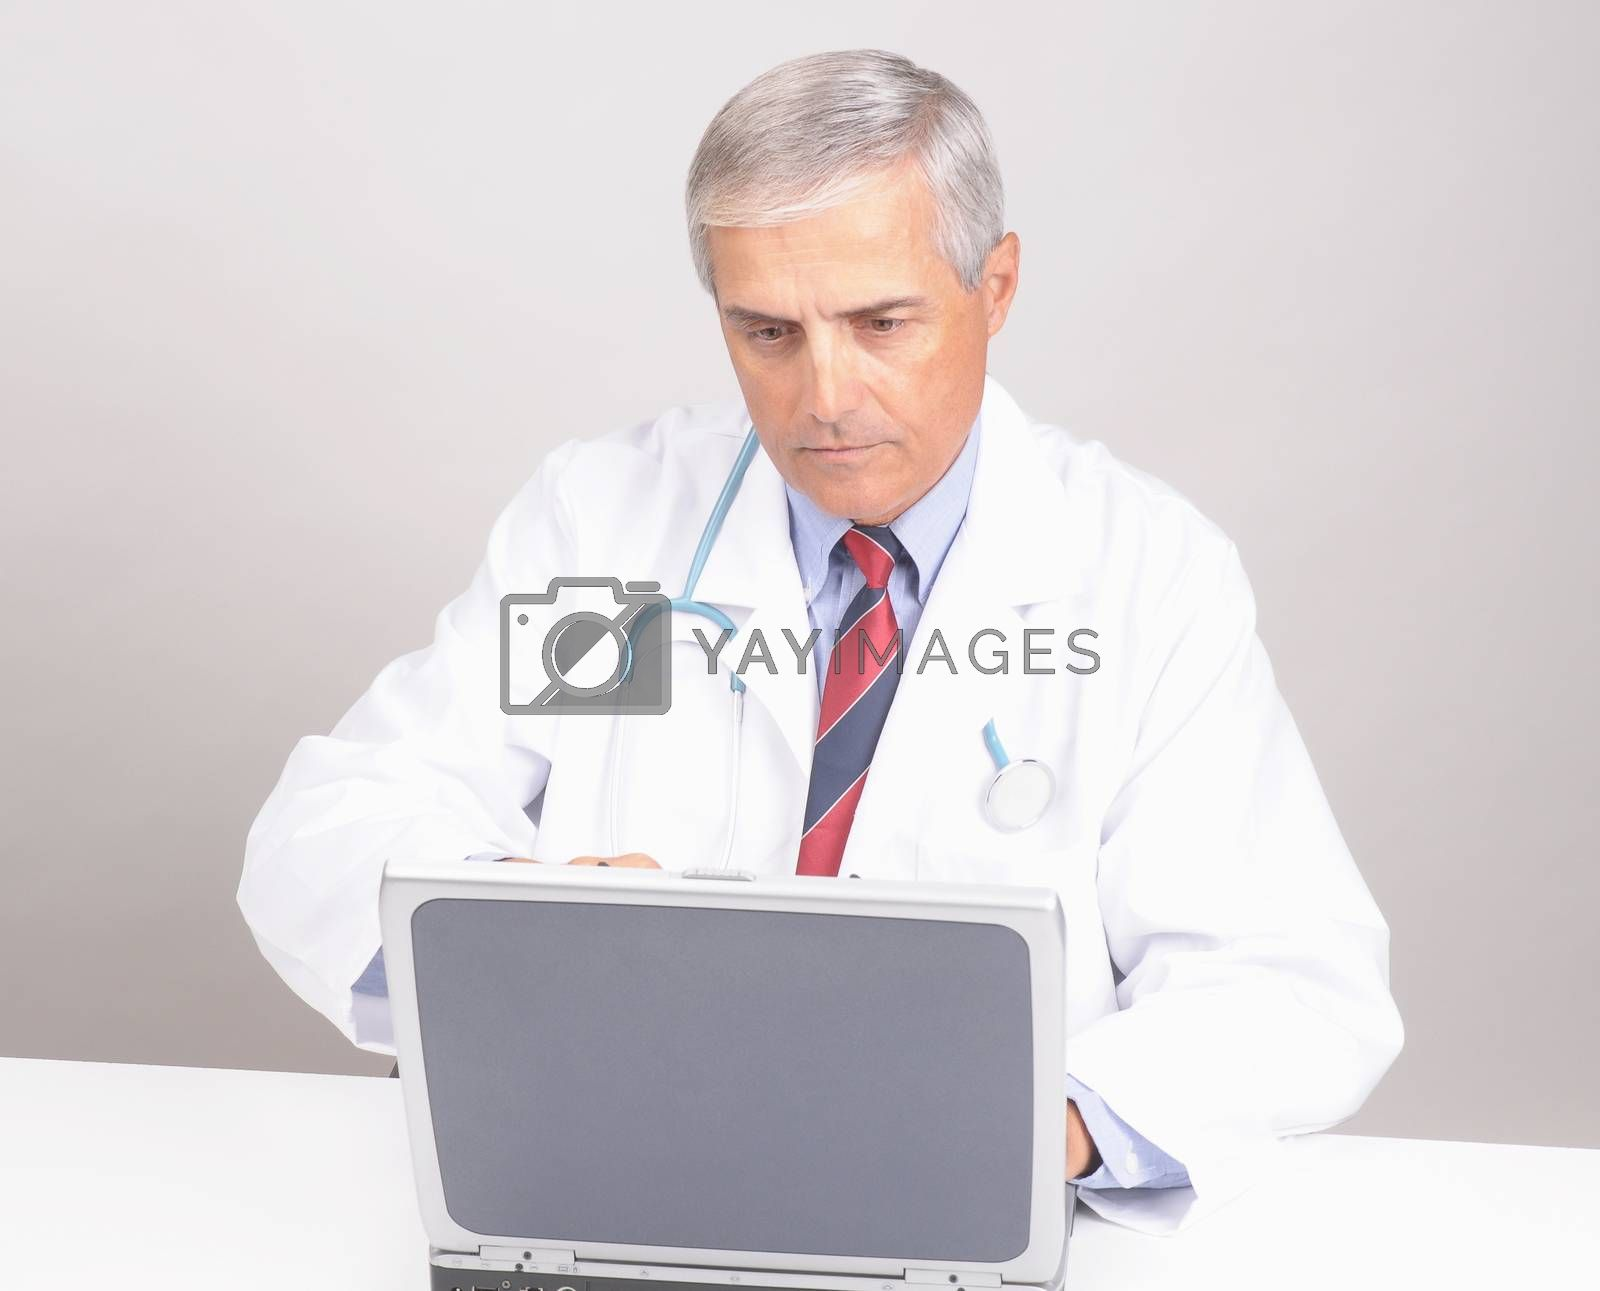 Middle Aged  Doctor seated at Desk with Laptop Computer - gray background